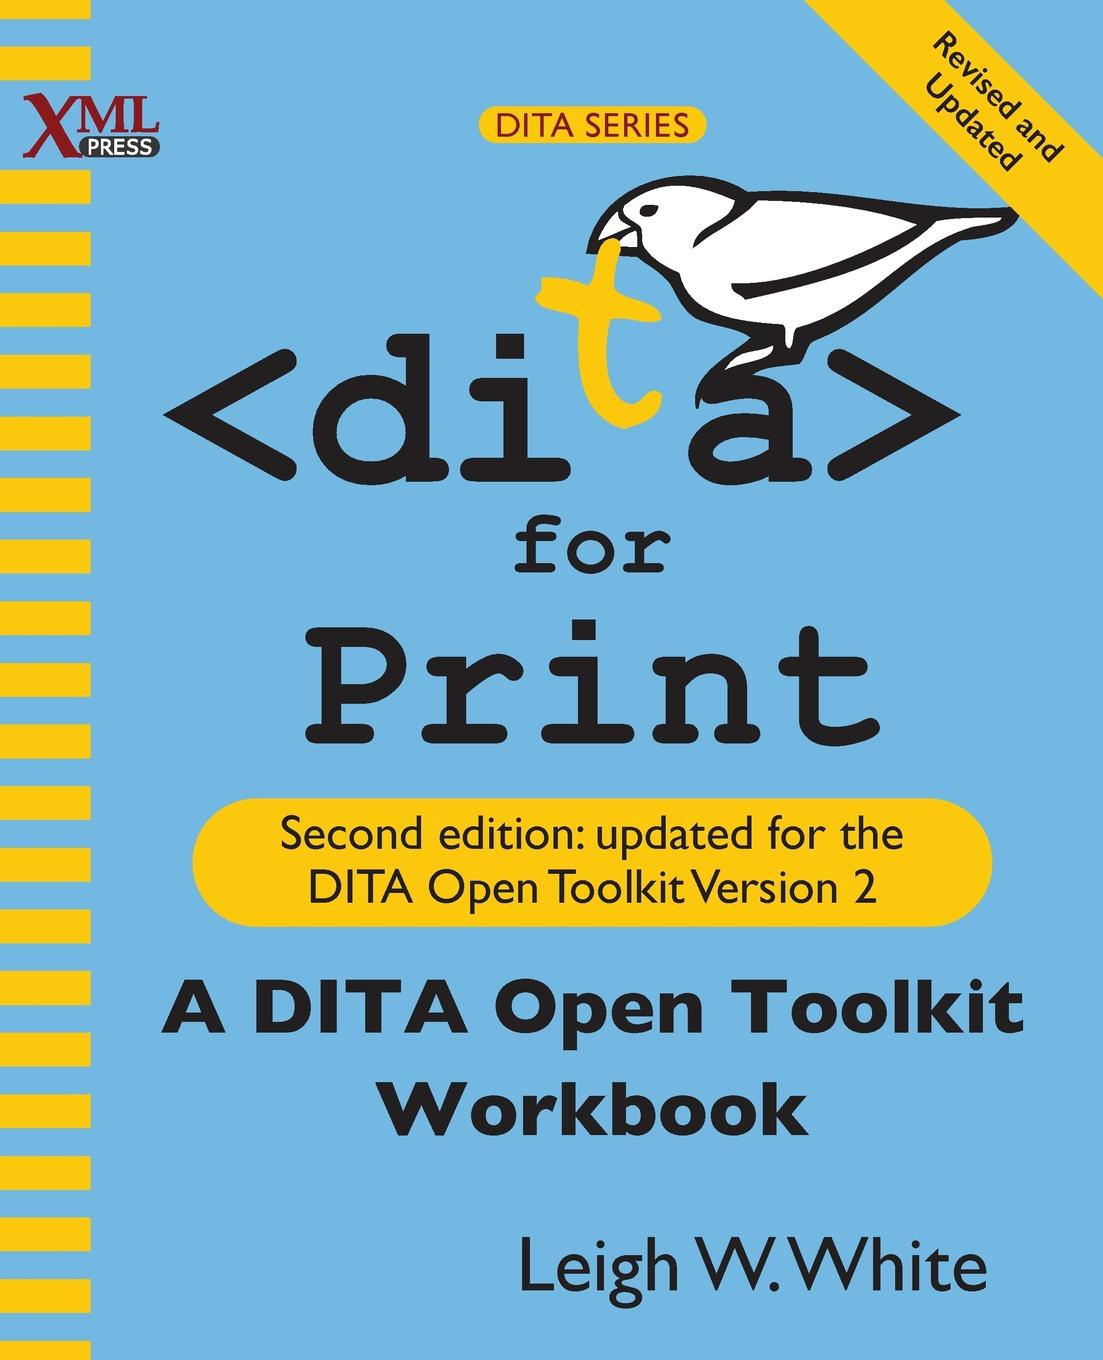 Leigh W White DITA for Print. A DITA Open Toolkit Workbook, Second Edition sissi closs dita the topic based xml standard a quick start